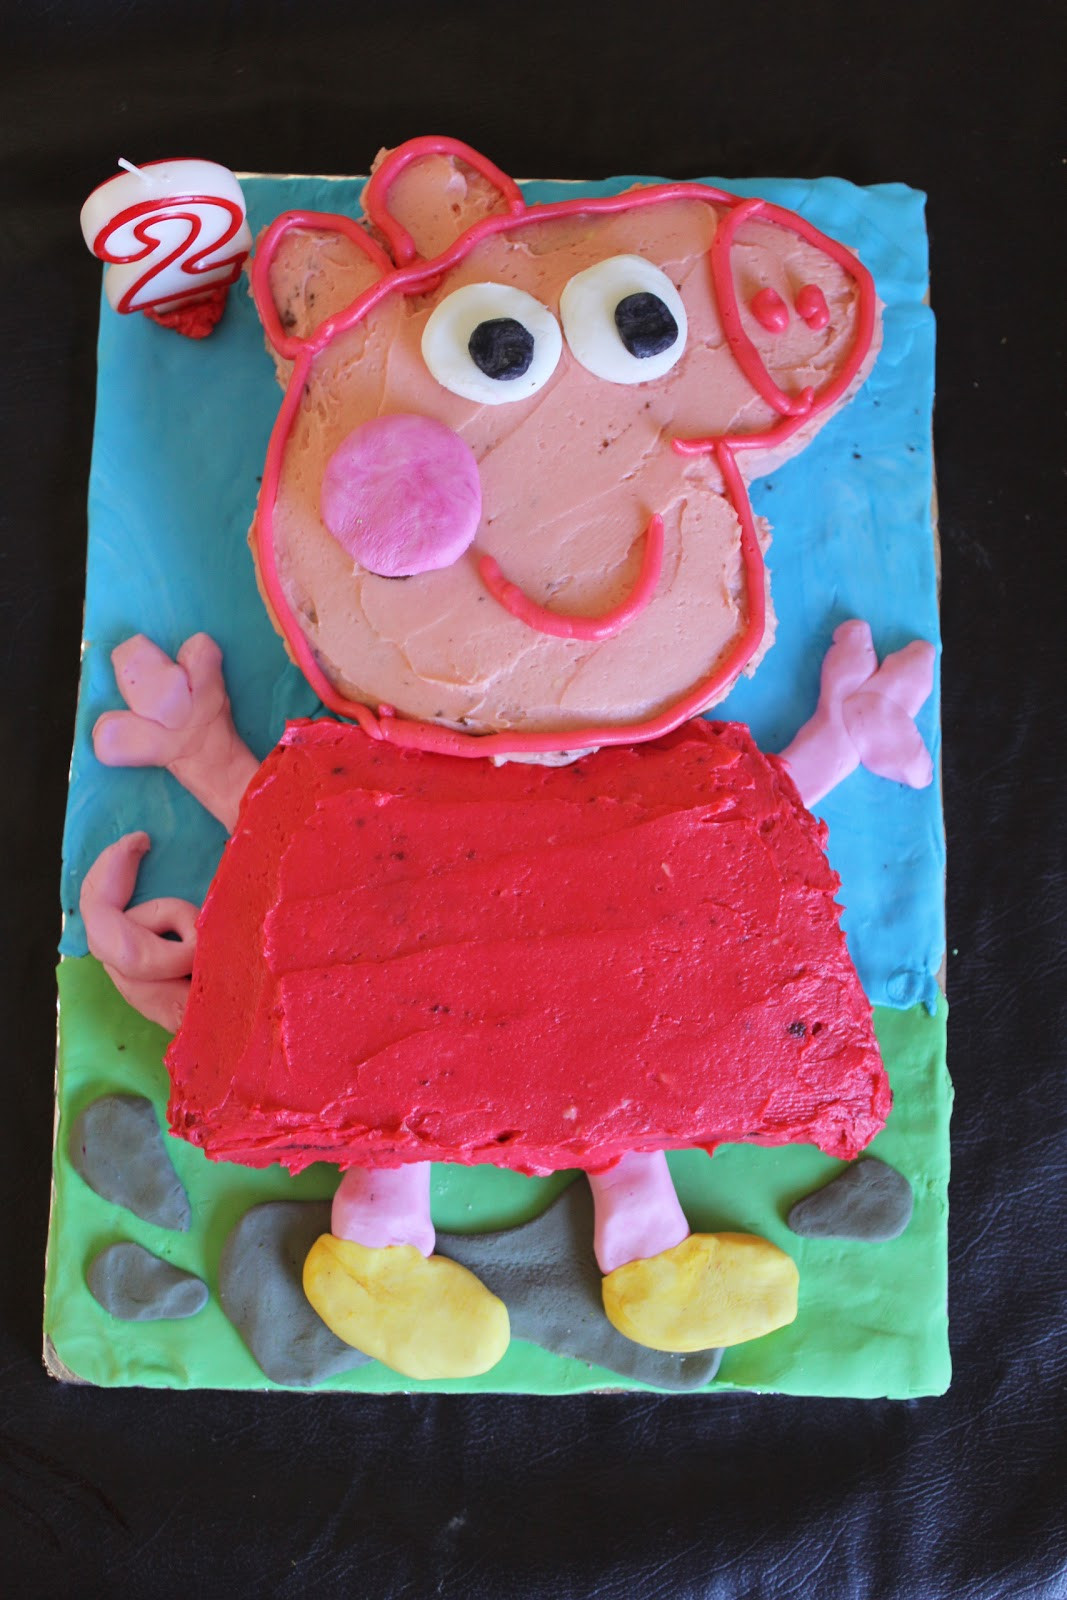 Peppa Pig Birthday Cake  justfordaisy Peppa Pig Birthday Cake DIY